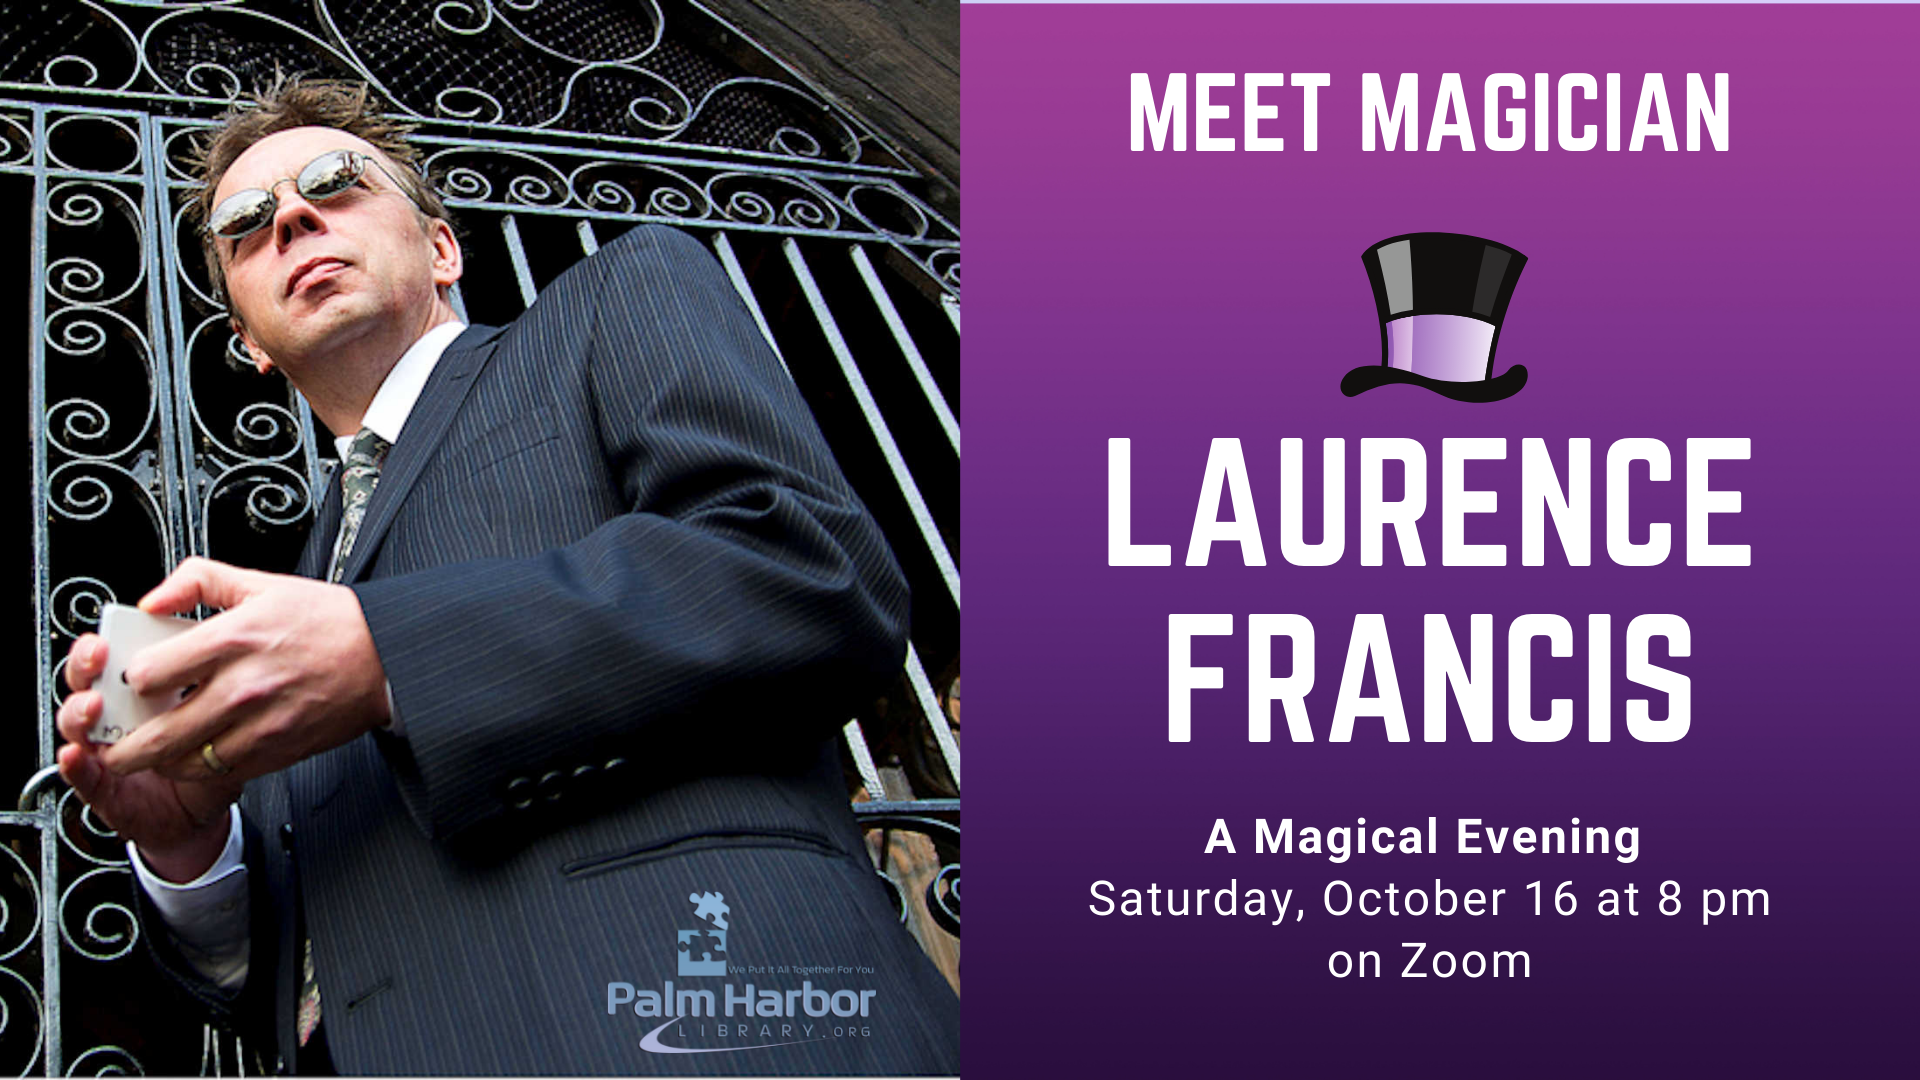 Mentalist Laurence Francis will be performing for A Magical Evening on October 16th, at 8 PM.